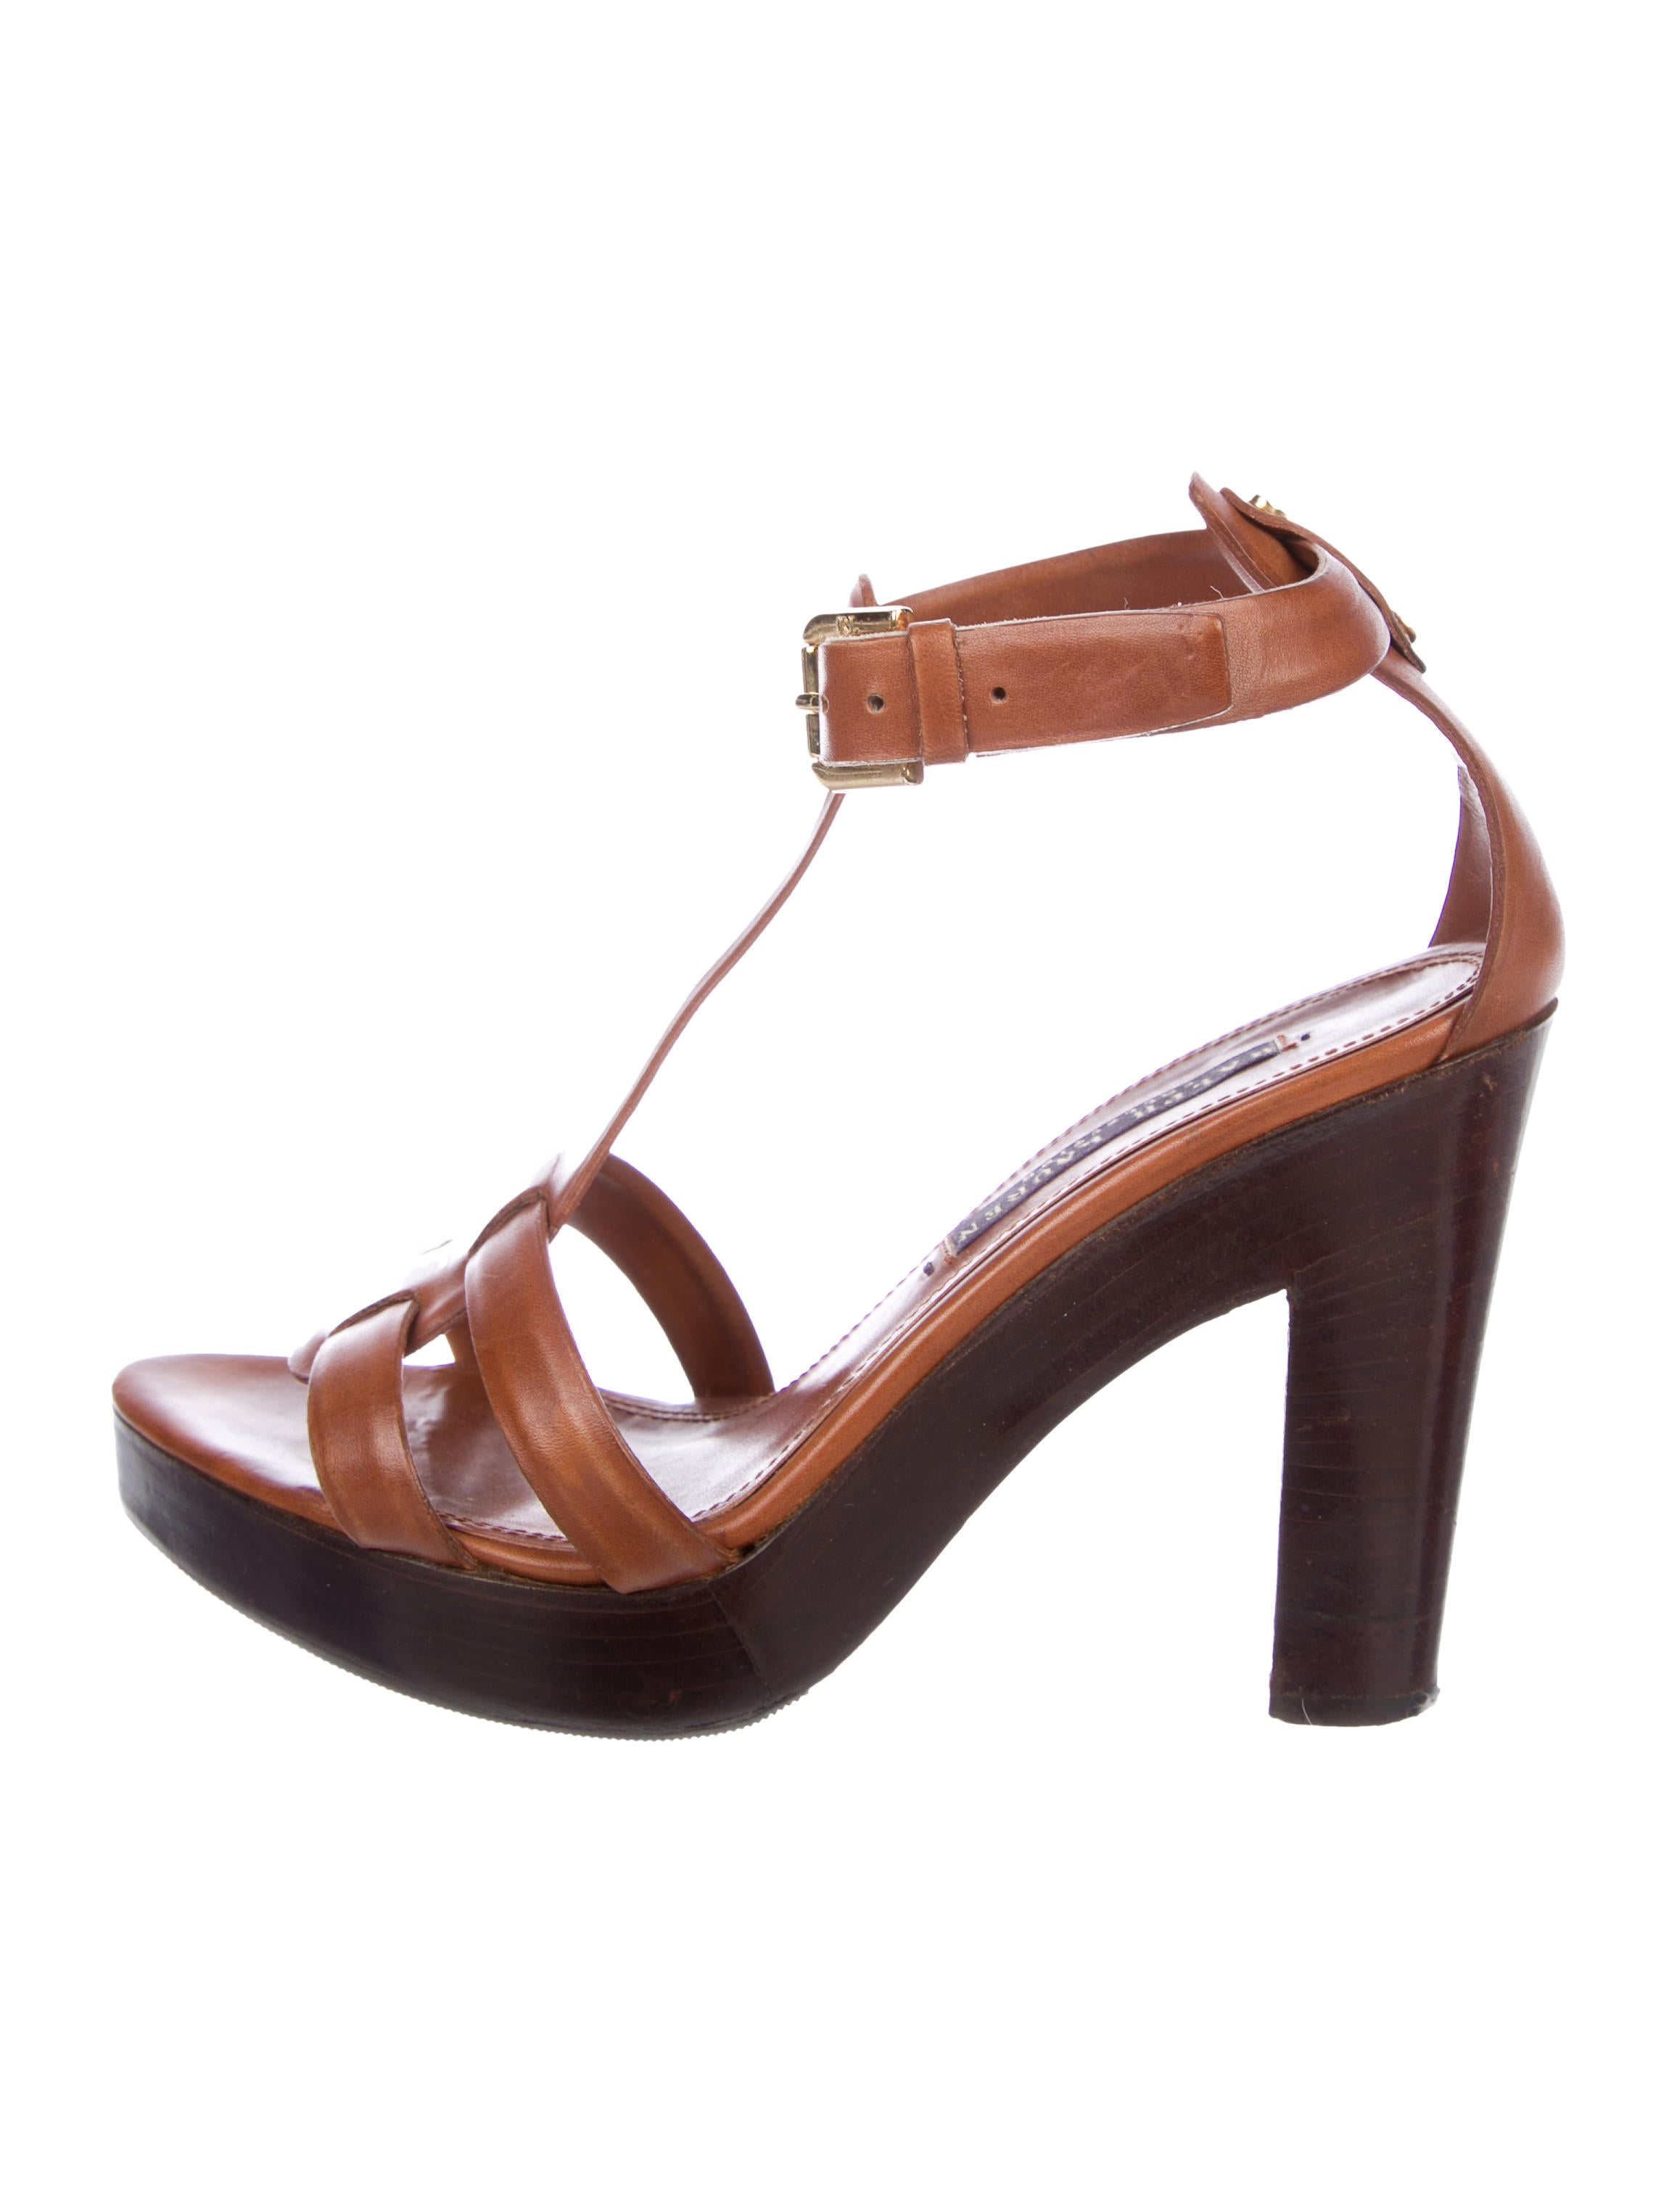 Ralph Lauren Collection Leather T-Strap Sandals buy cheap high quality V0CIl